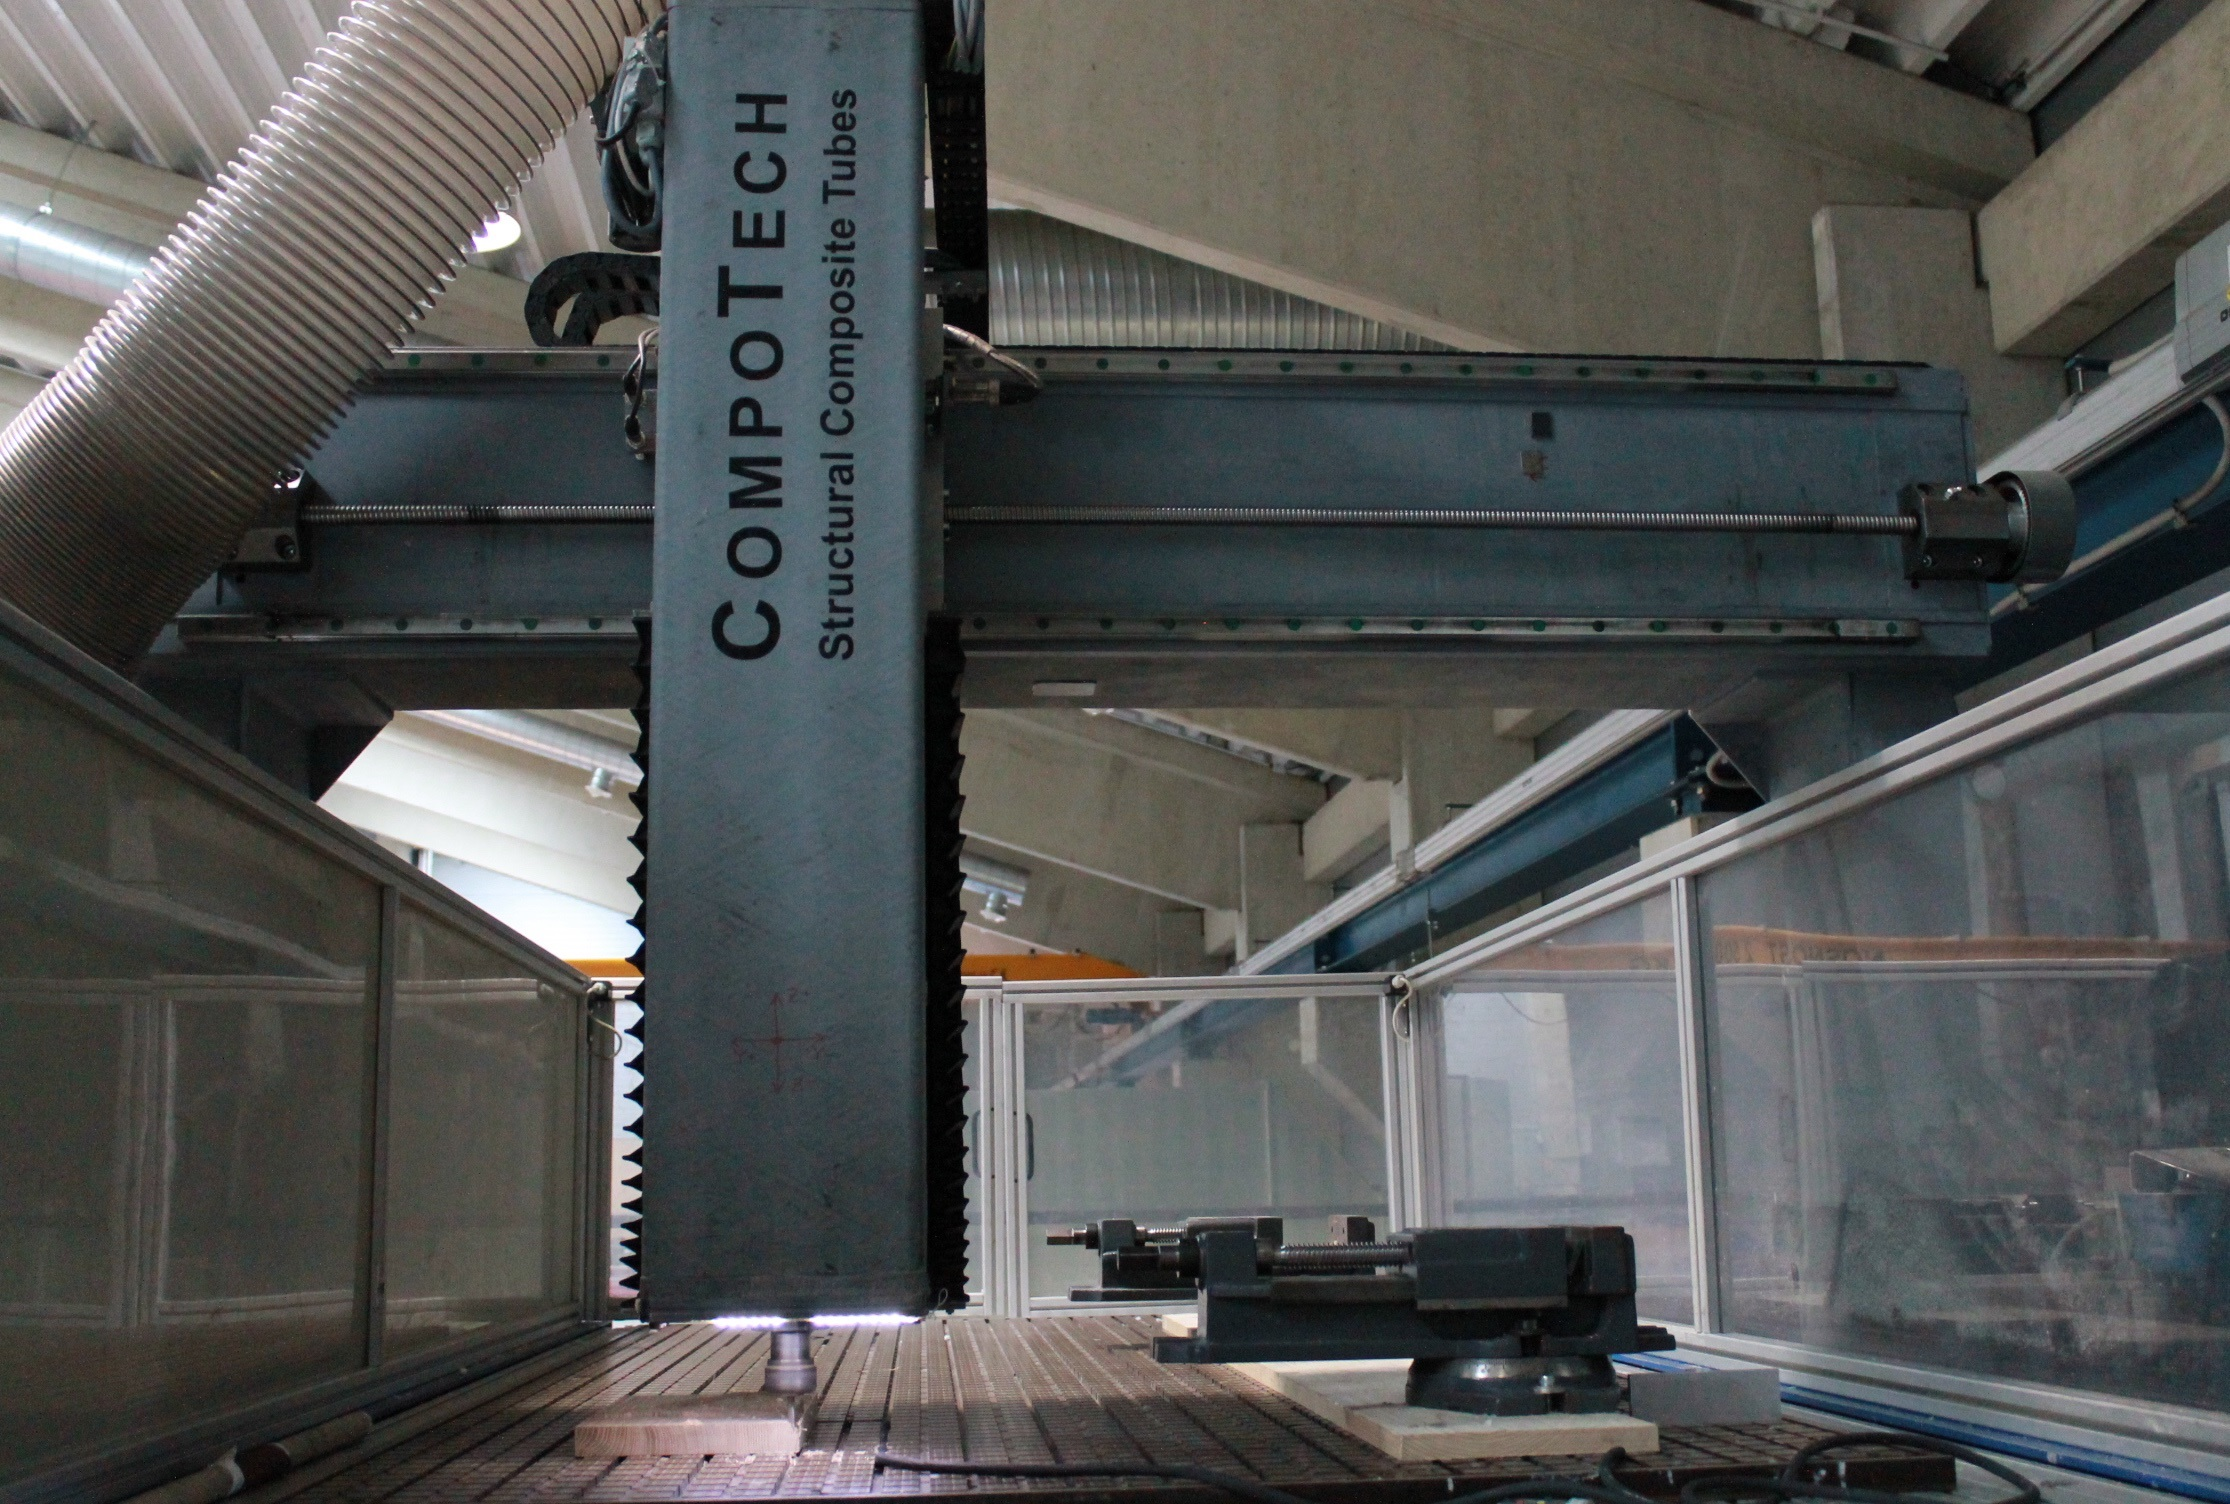 A 3 axis milling machine with CompoTech graphite composite gantry and z axis beams